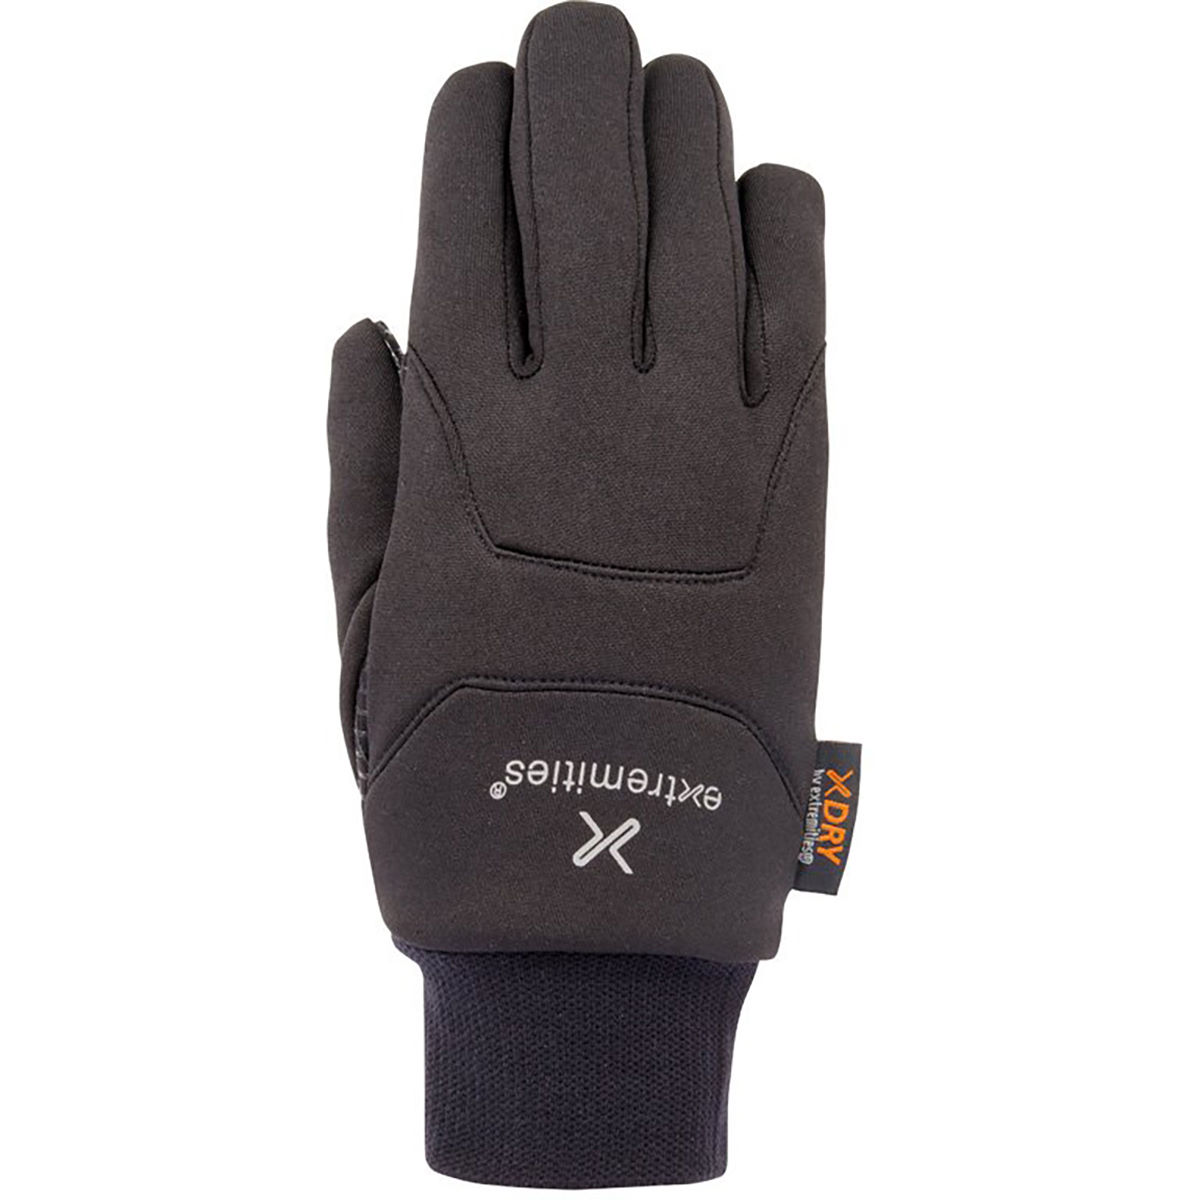 Extremities Sticky Waterproof Powerliner Gloves - Guantes